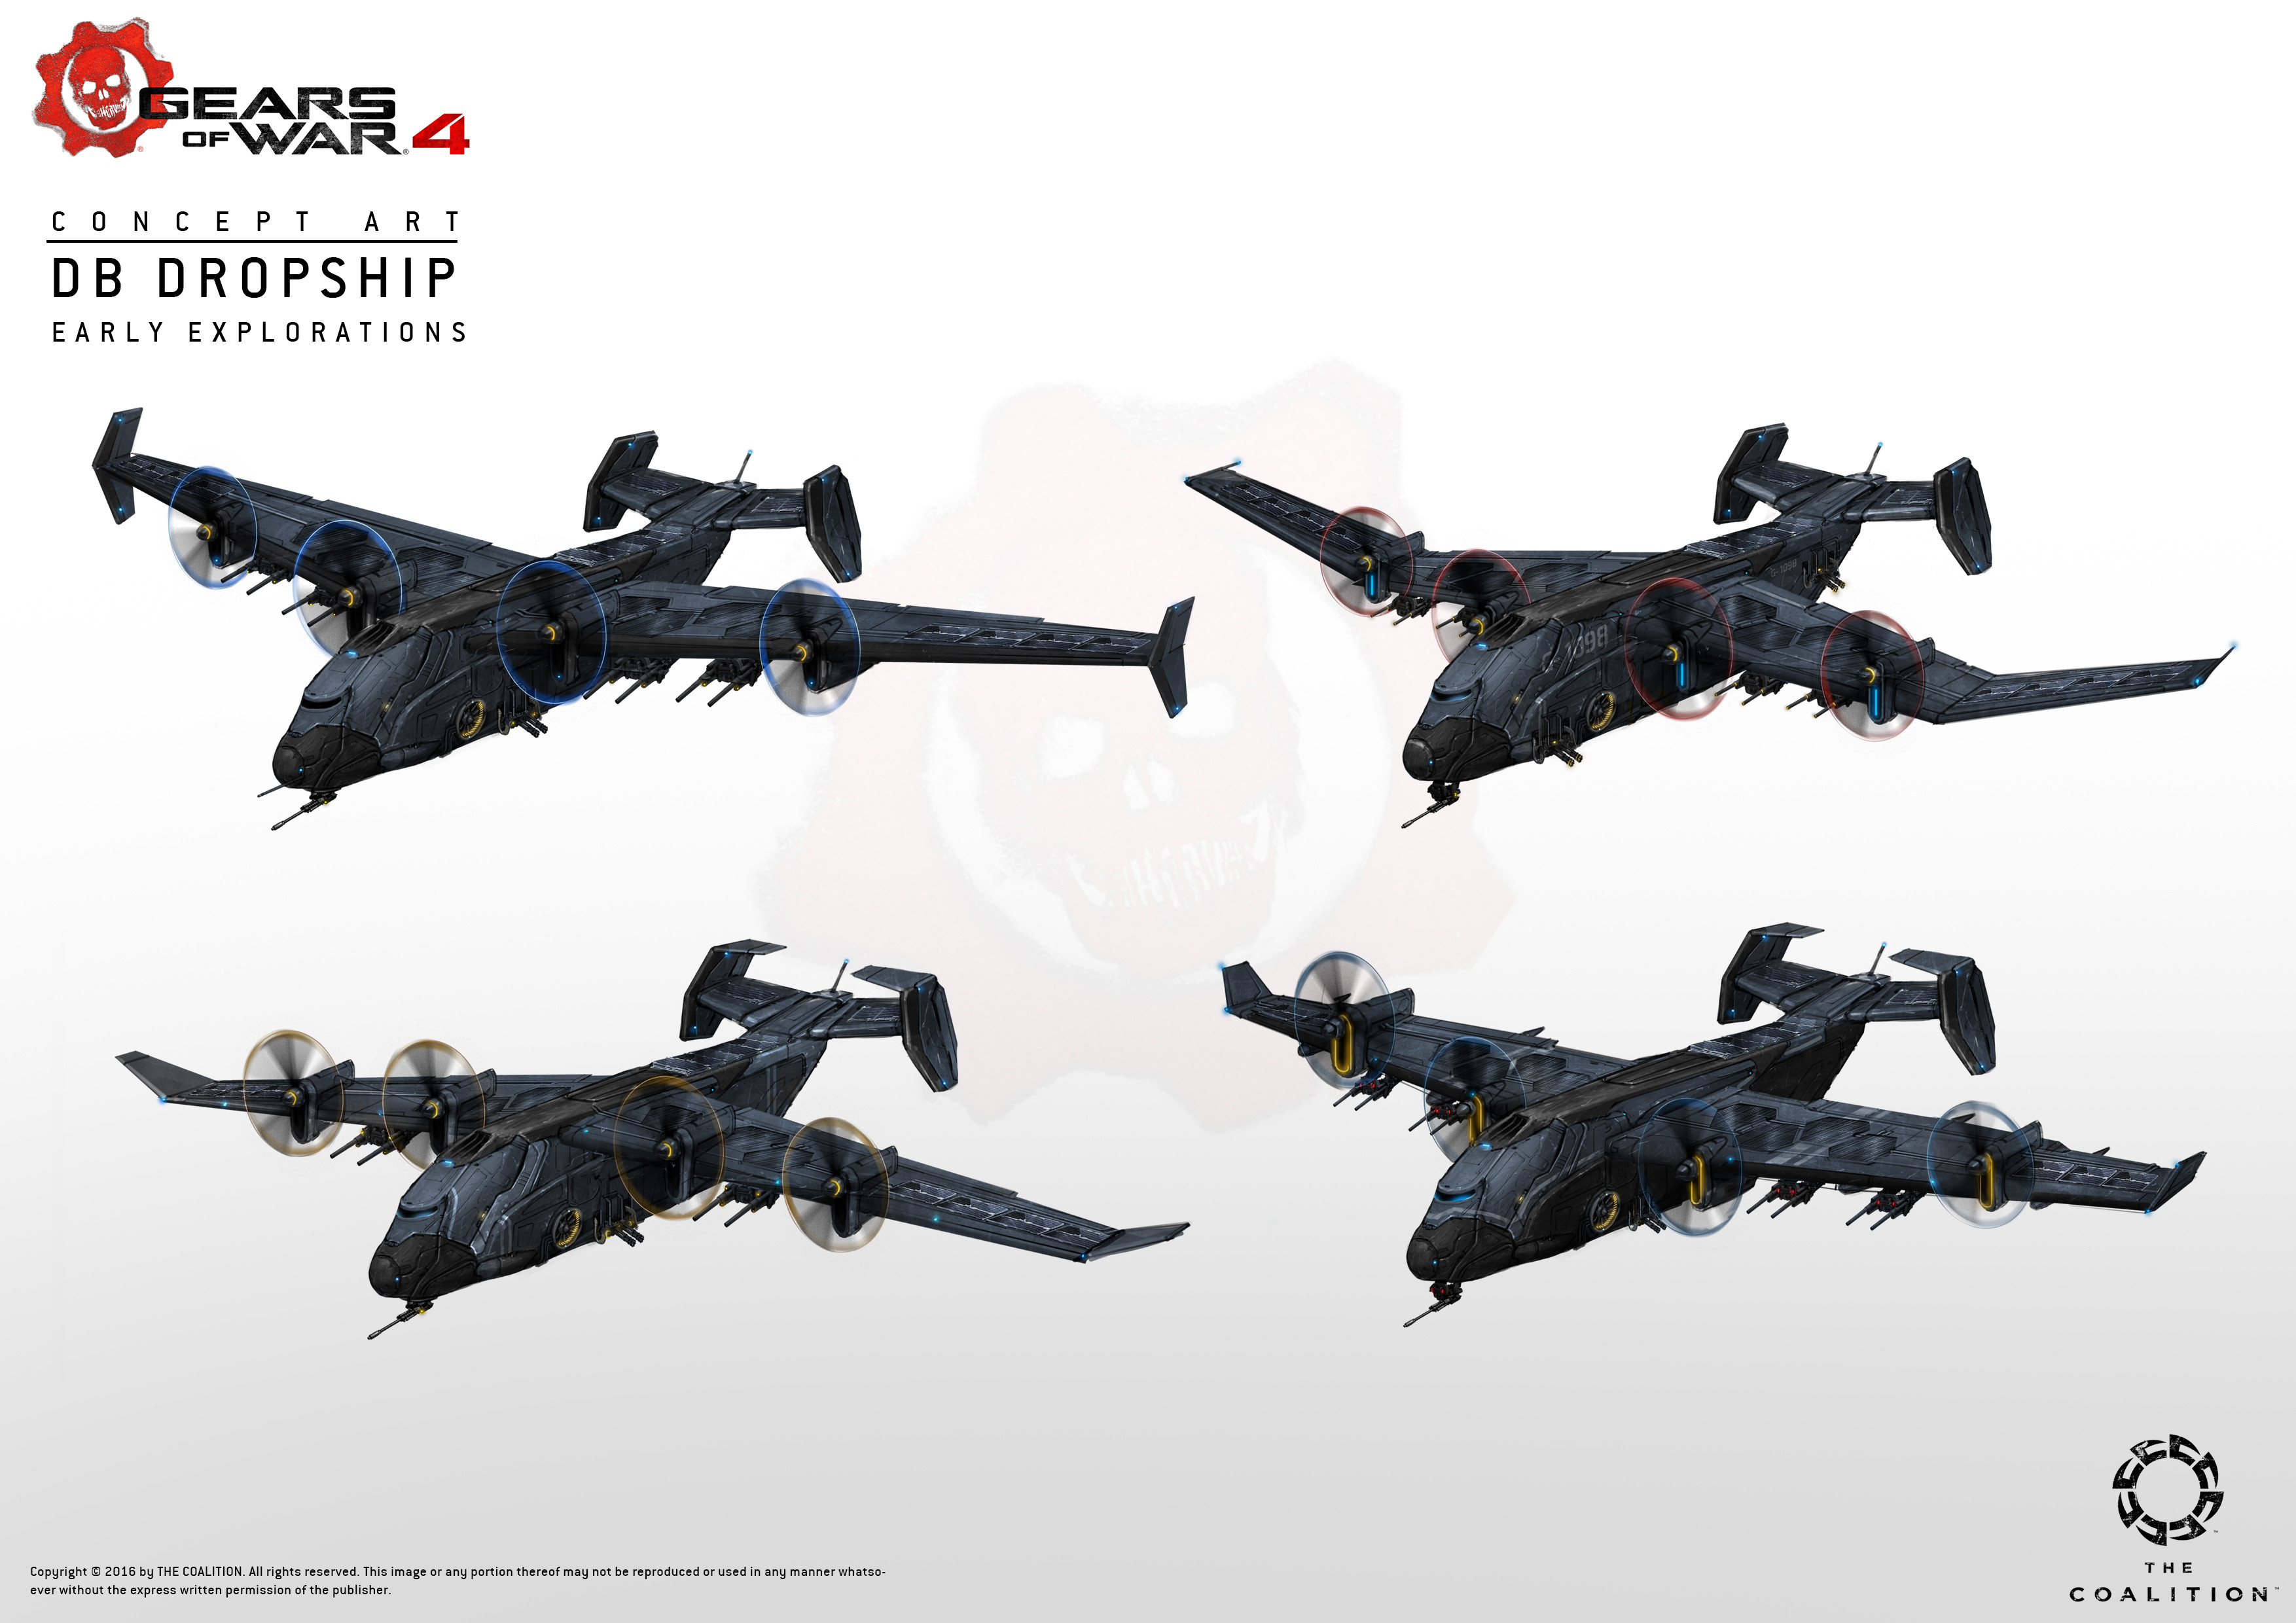 Early explorations for the vulture dropship